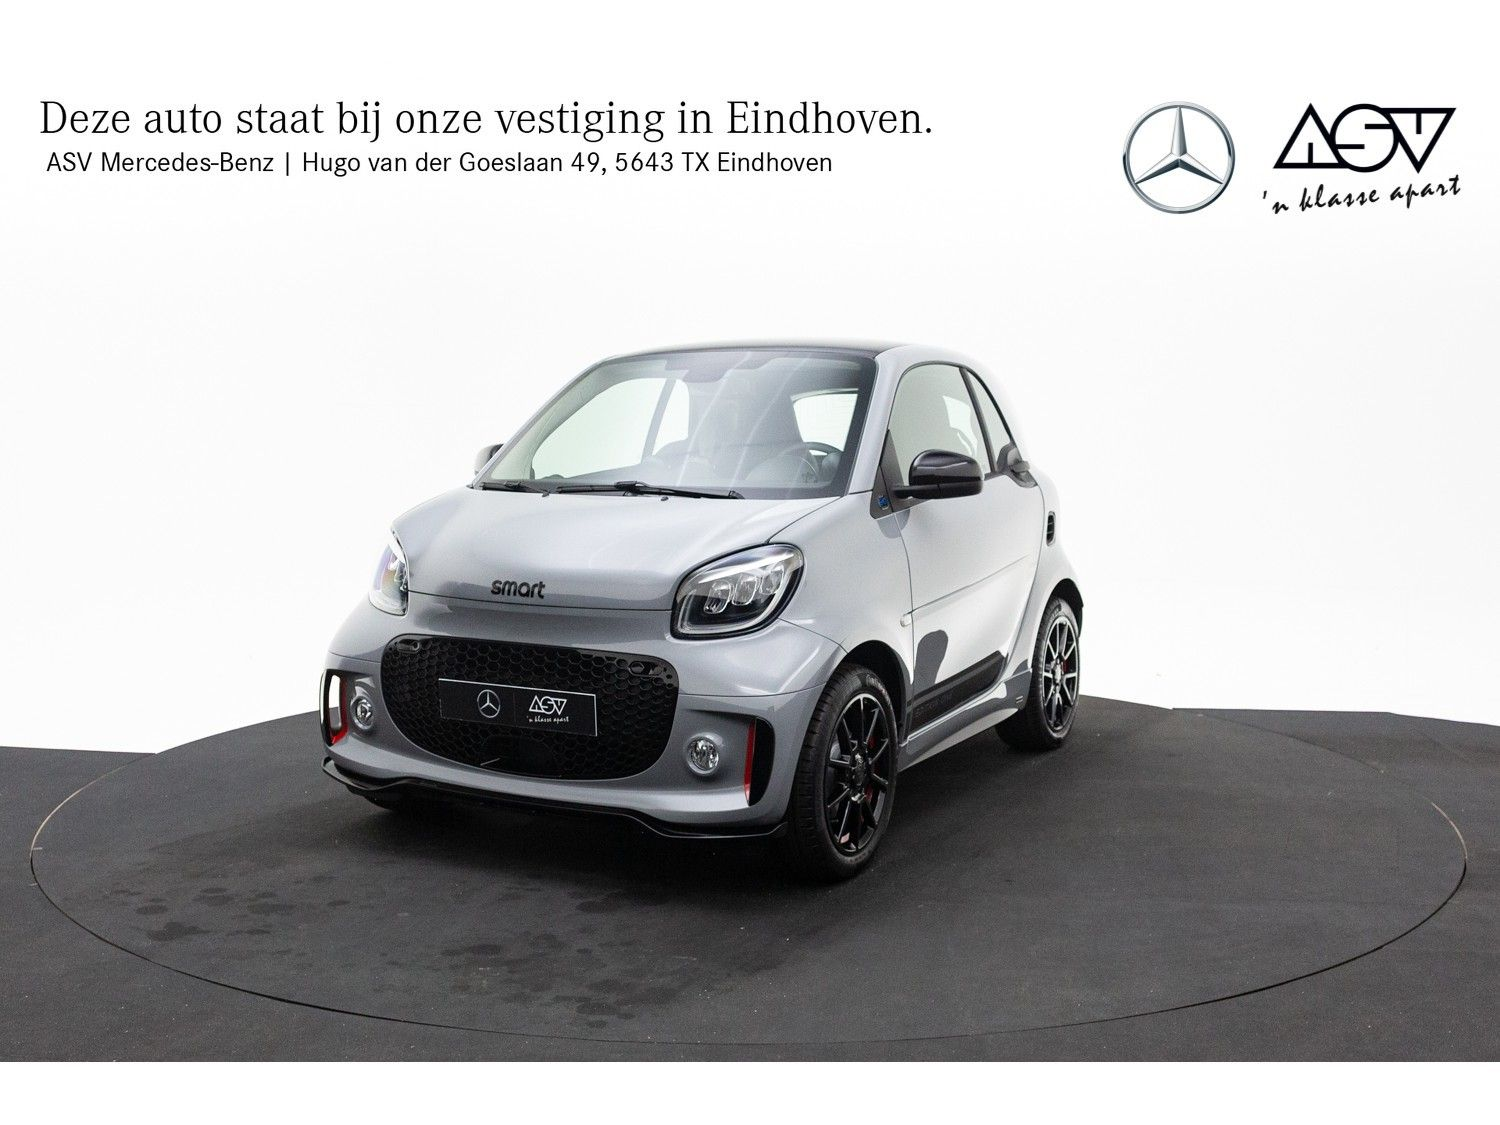 Smart Fortwo EQ Edition One Stoelverwarming, Lederen bekleding